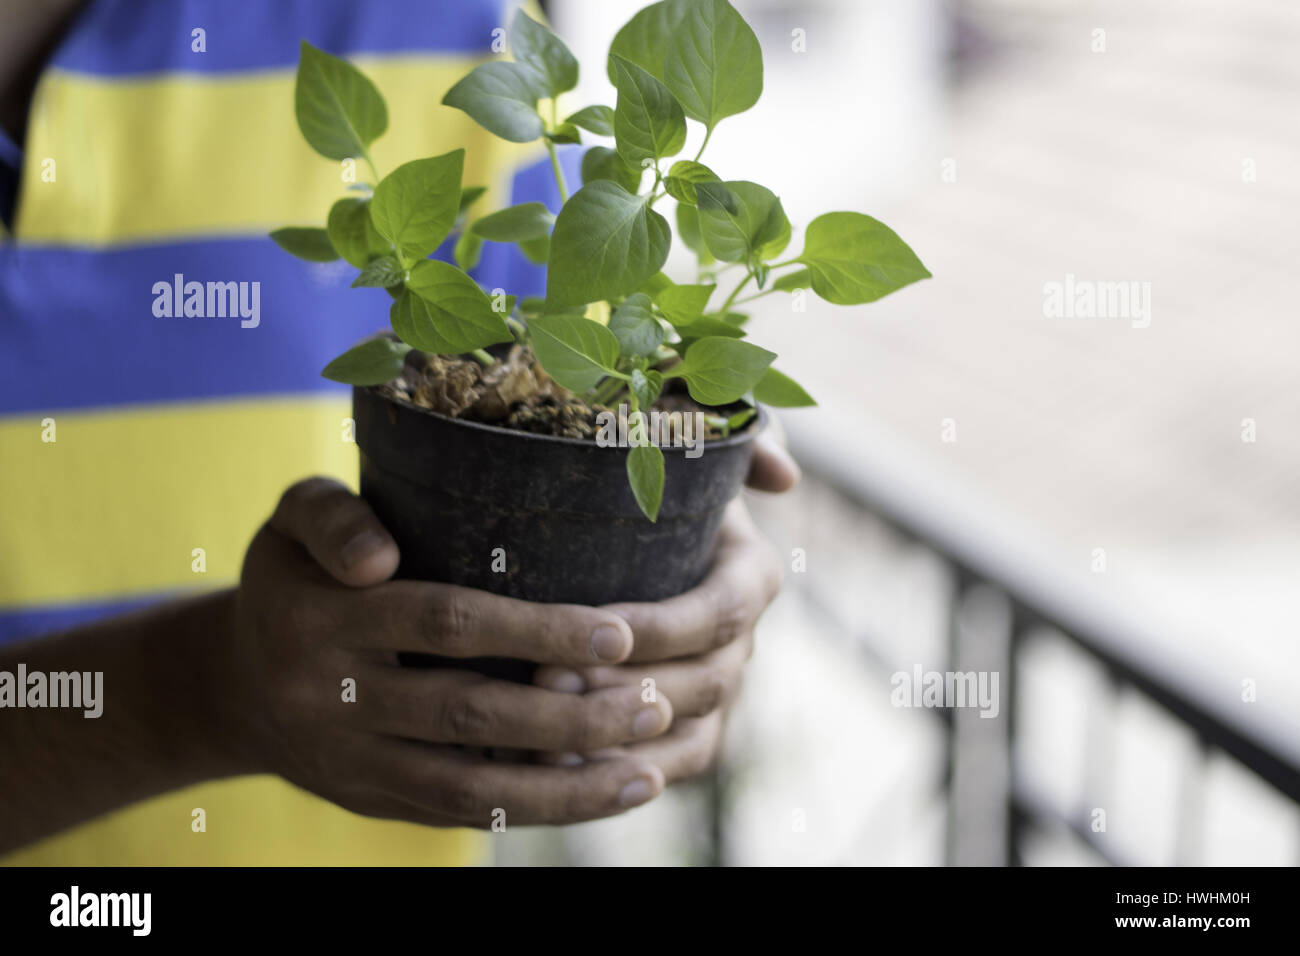 Close up of hands holding a potted plant - Stock Image